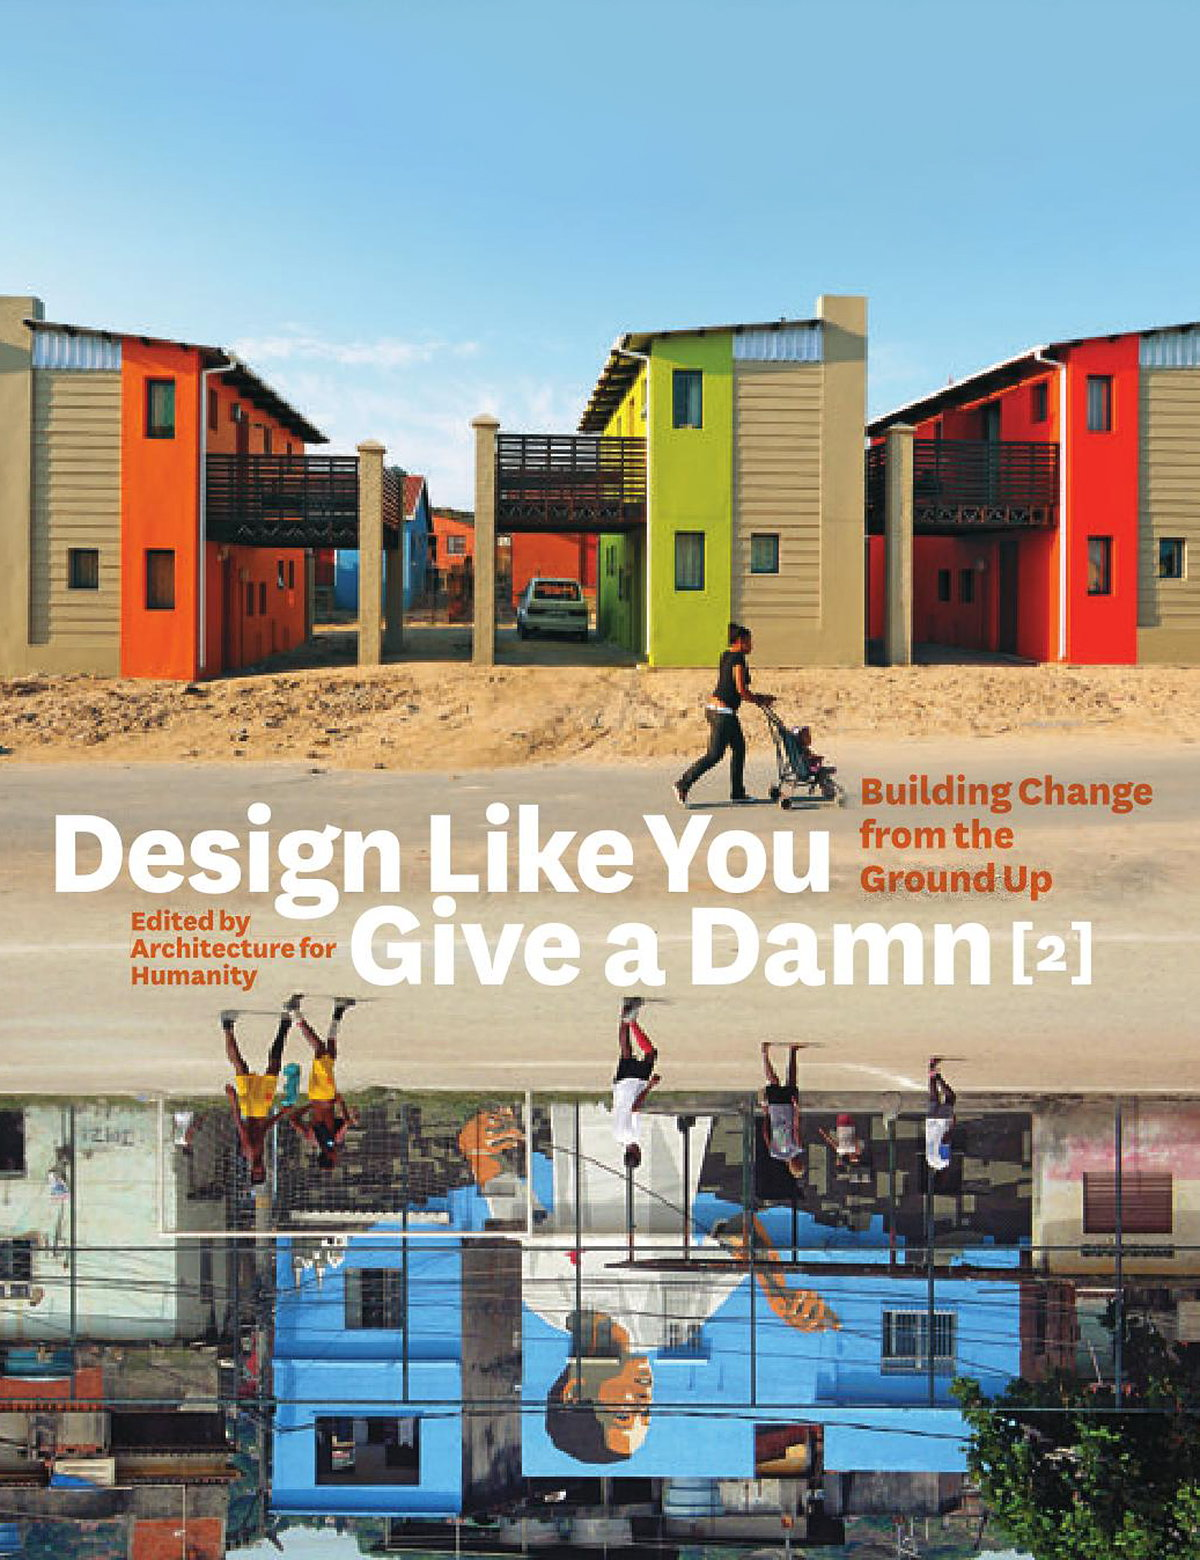 Design Like You Give a Damn 2 - Building Change from the Ground Up